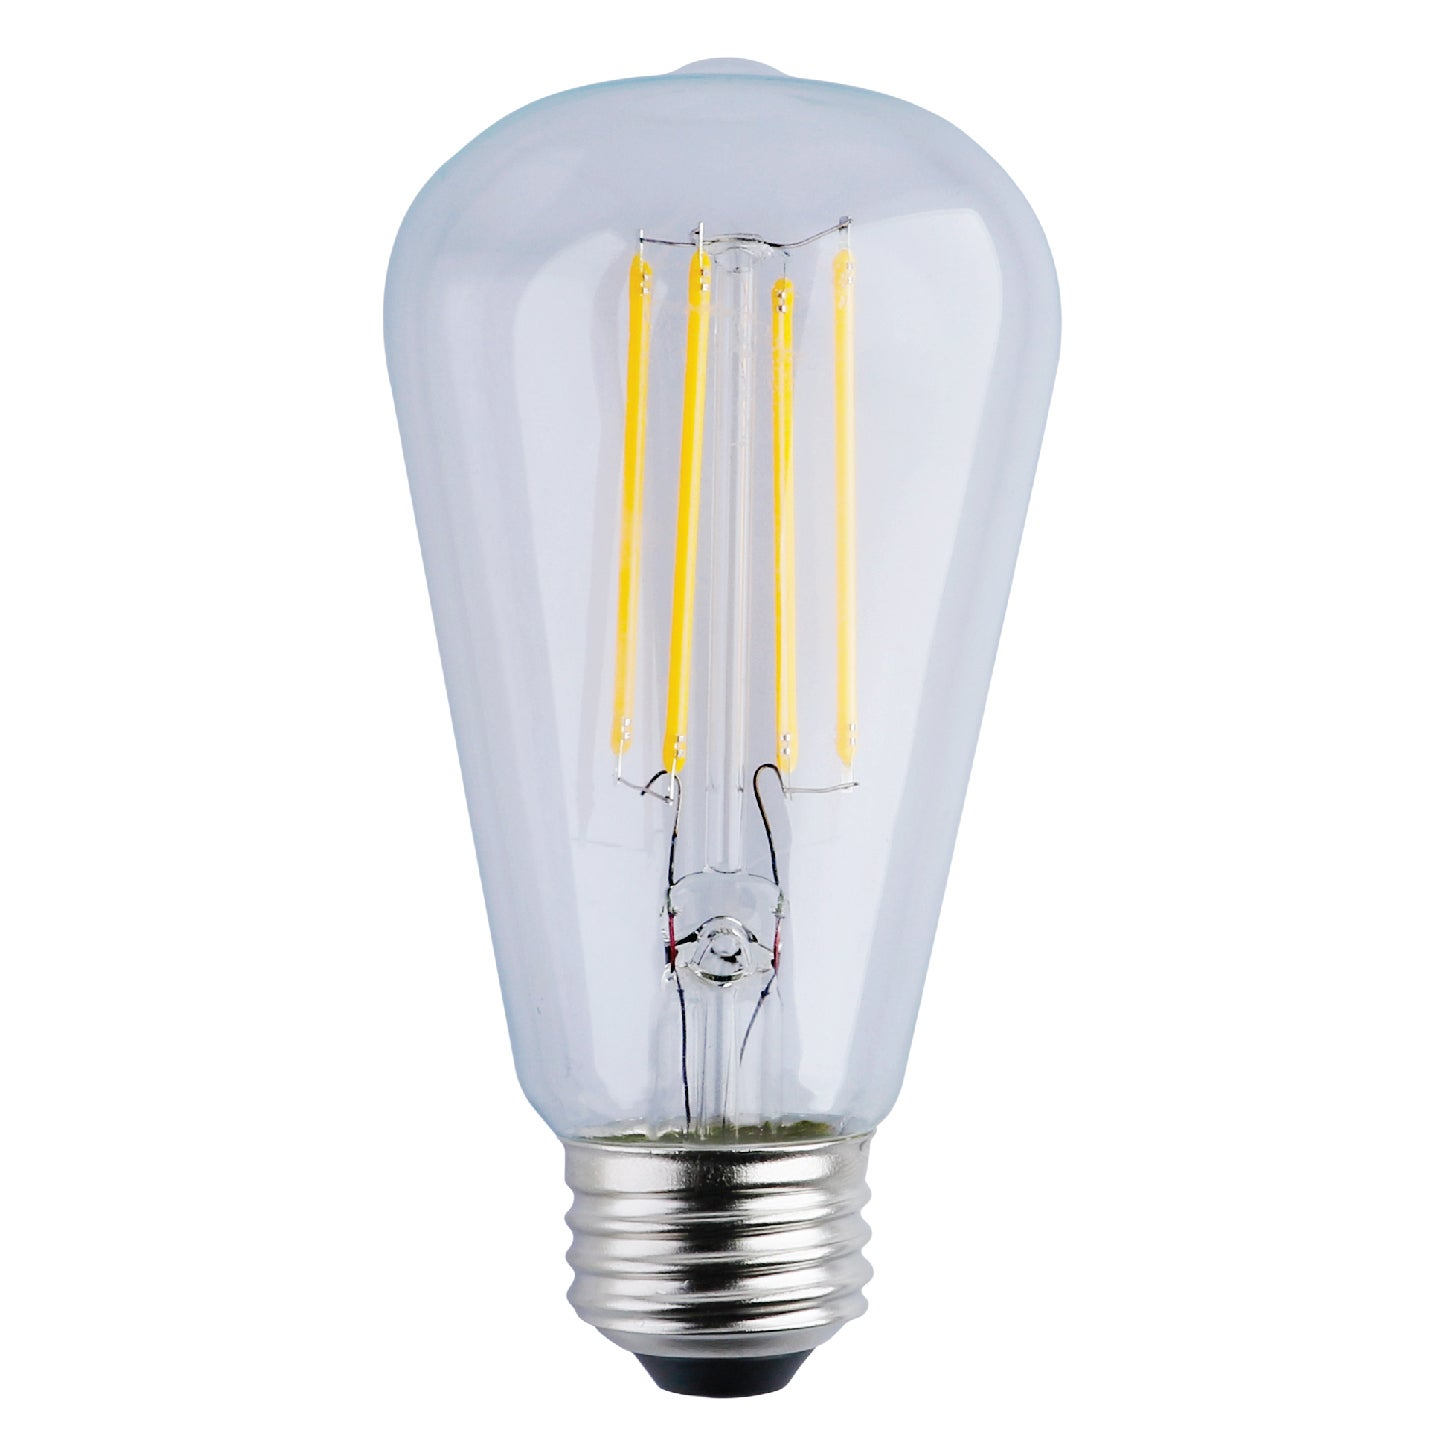 Goodlite St21 Clear Led Light Bulb 7w 80w Equivalent 850 Lumens Warm White 2700k E26 Base Dimmable 10 Pack